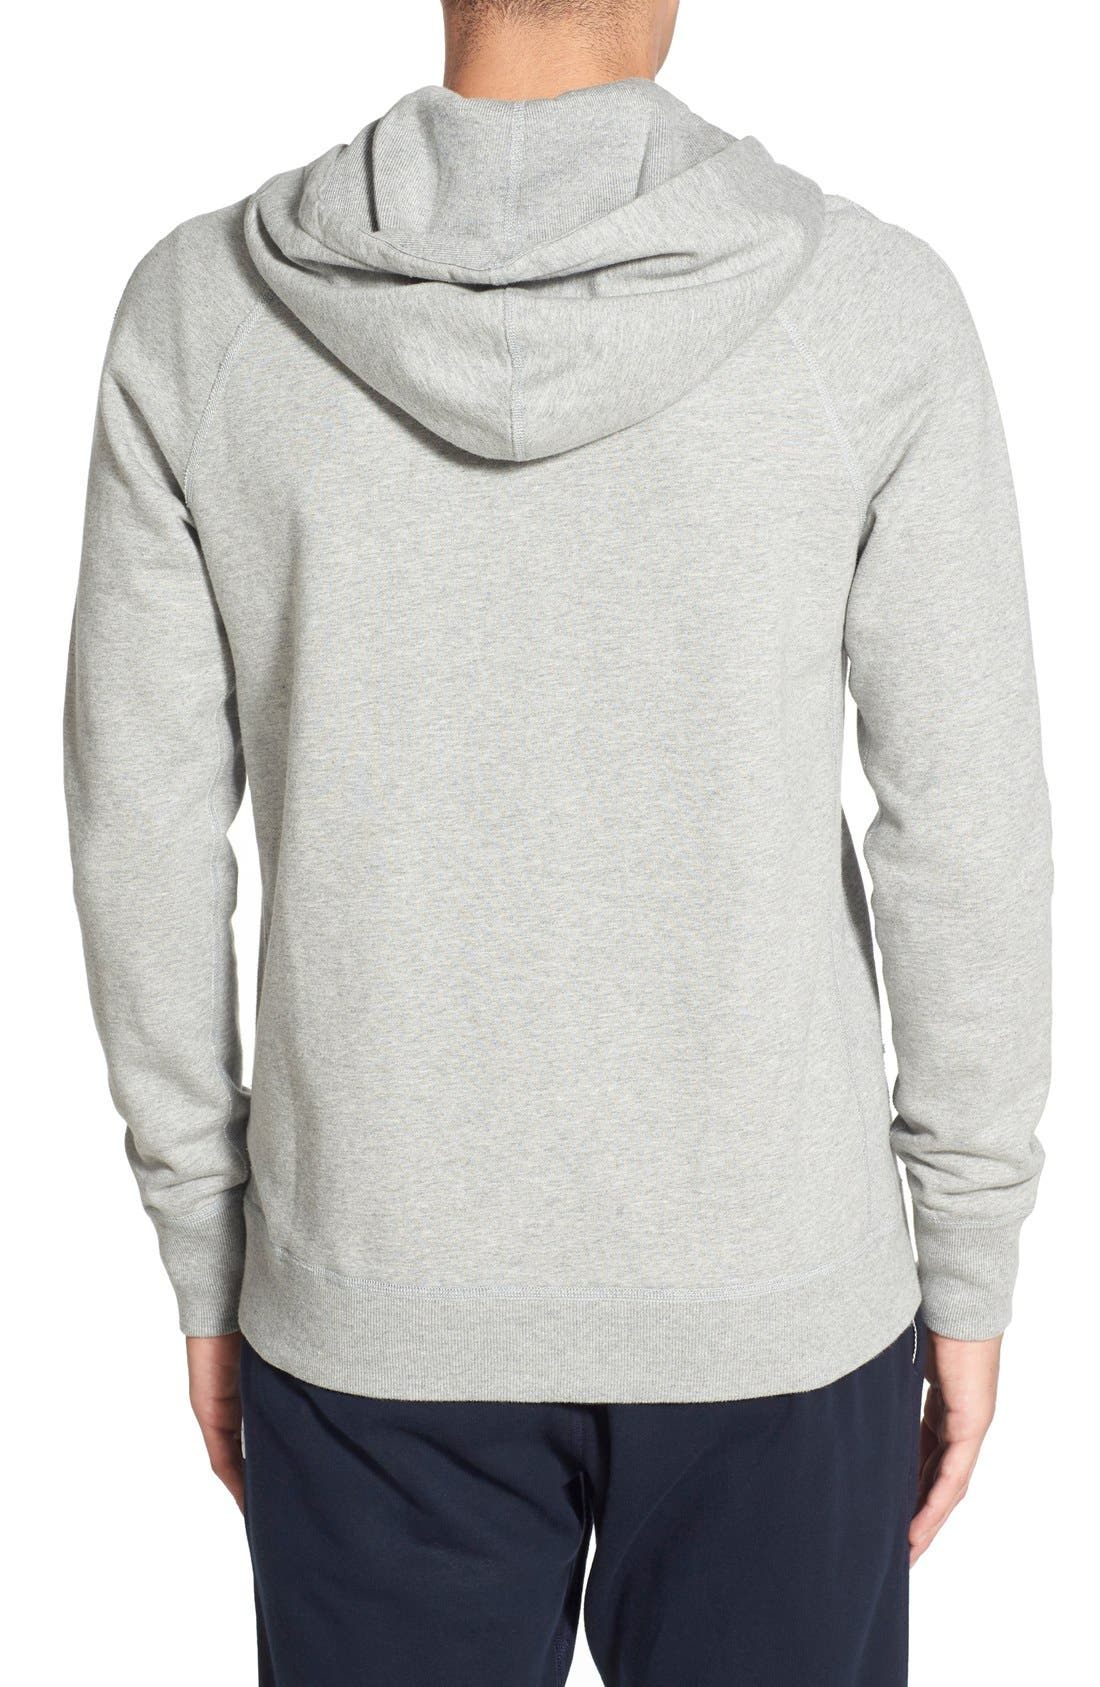 REIGNING CHAMP, Trim Fit Full Zip Hoodie, Alternate thumbnail 2, color, HEATHER GREY